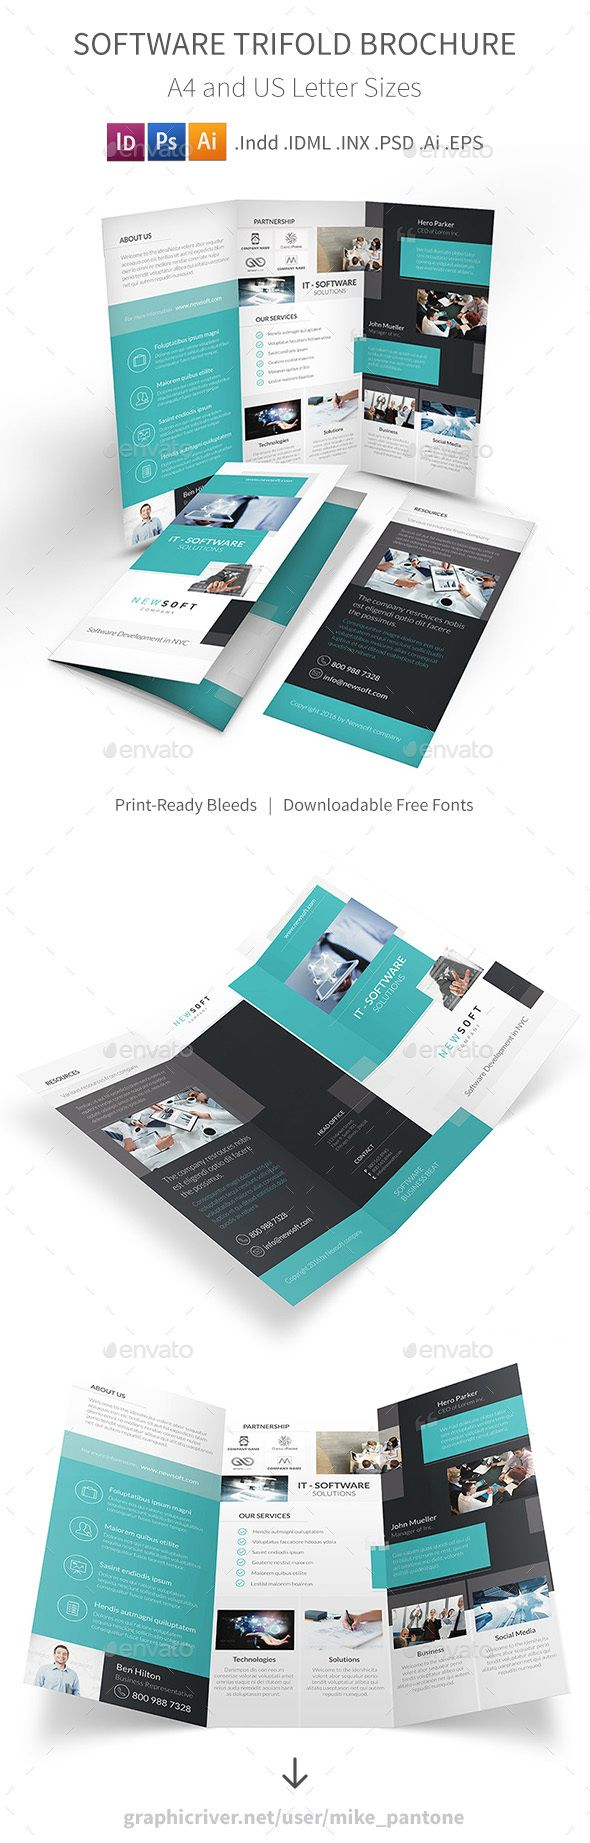 software brochure template - software company trifold brochure mike d 39 antoni